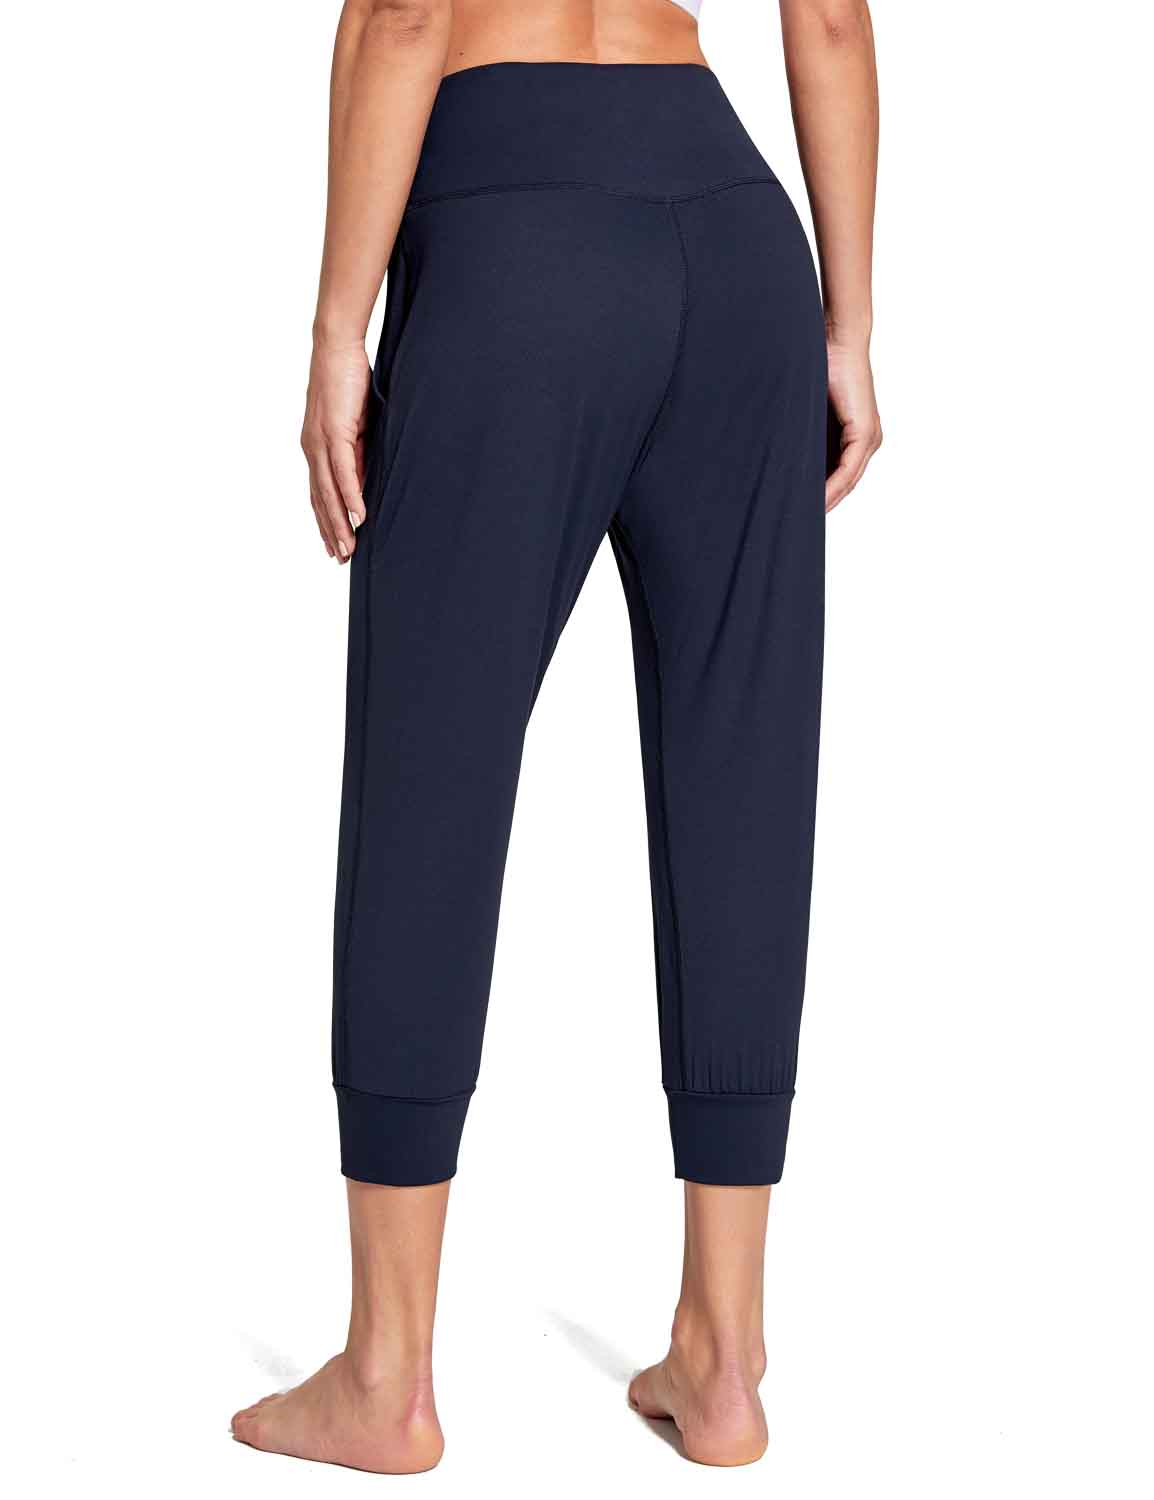 Baleaf Women's High Rise Soft Cropped Workout Pockets Joggers navy back